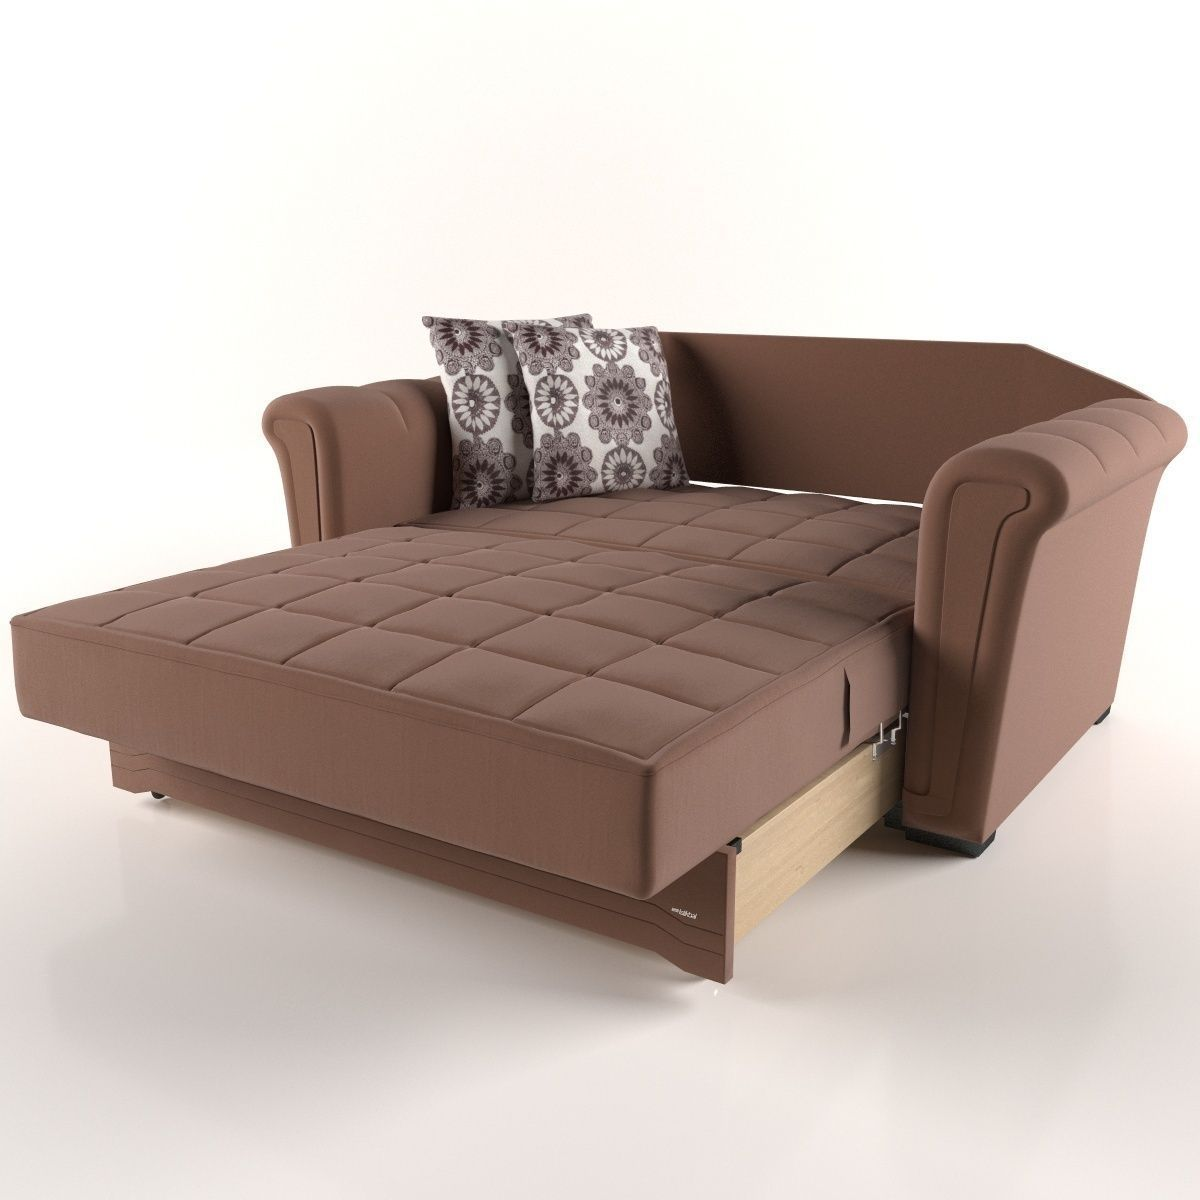 Victoria Sofa Bed Model Low Poly Animated Max Obj Mtl 1